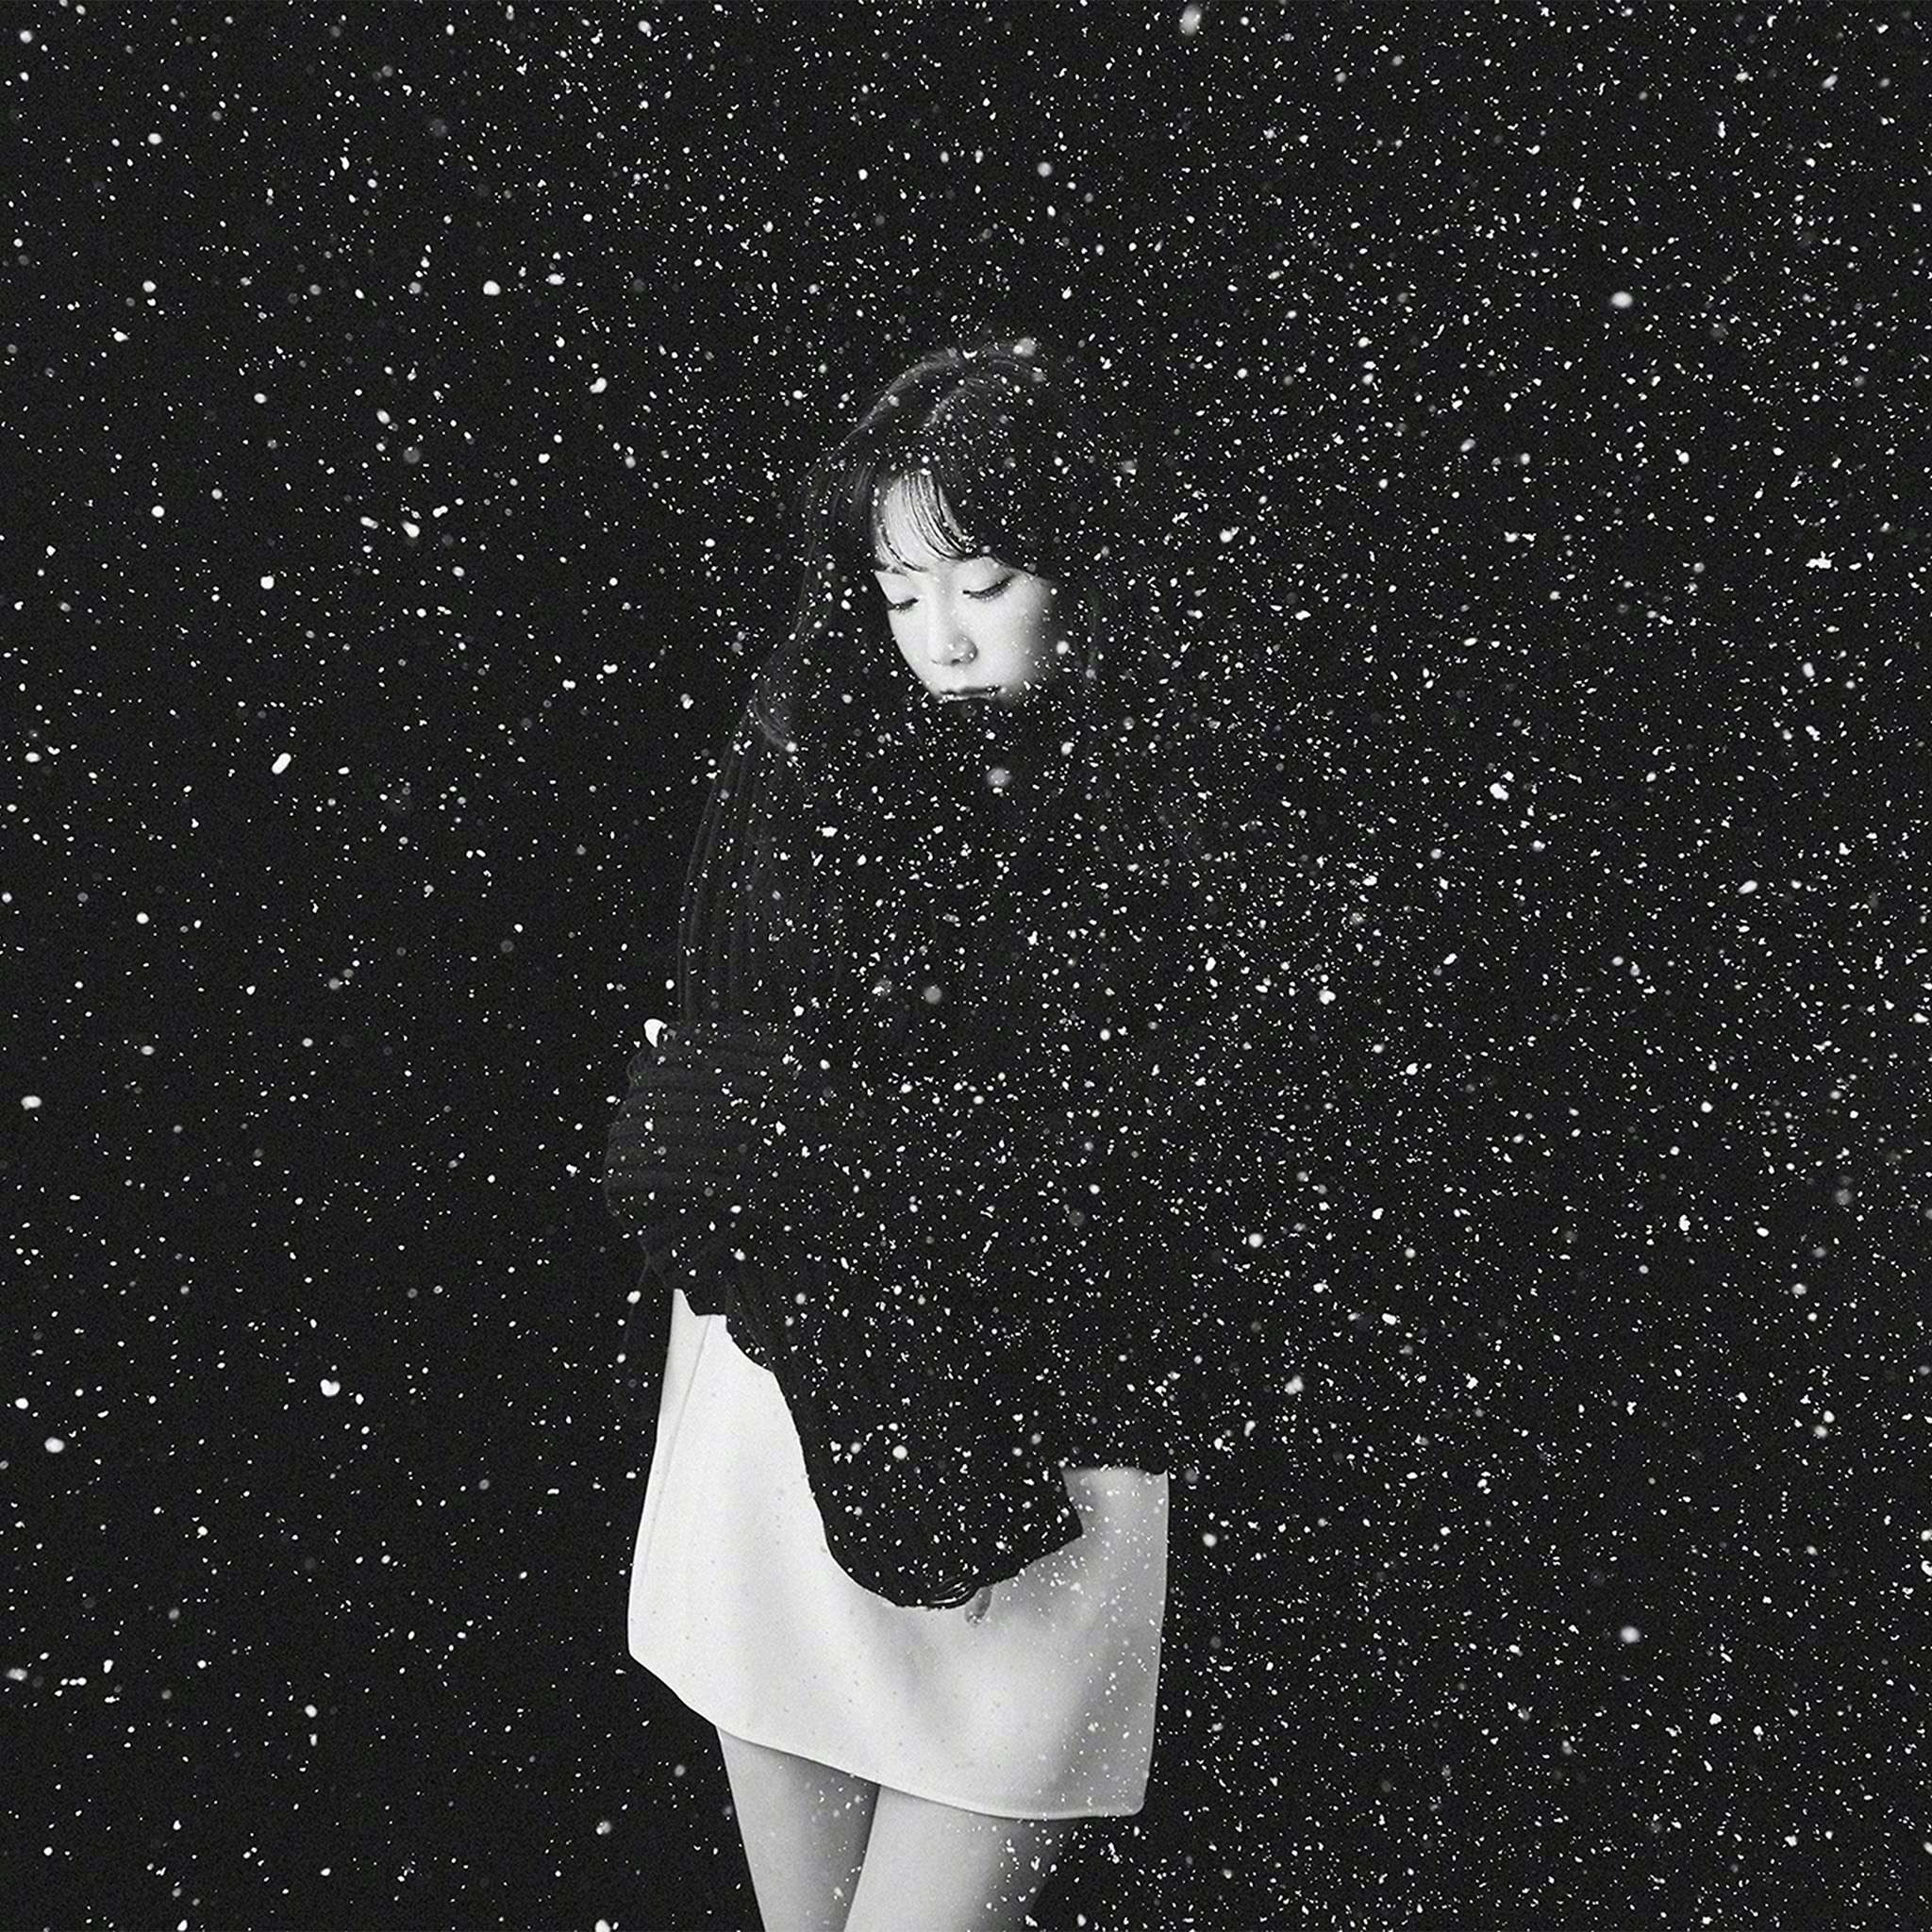 papers ho98 snow girl snsd taeyeon black bw kpop 8 wallpaper